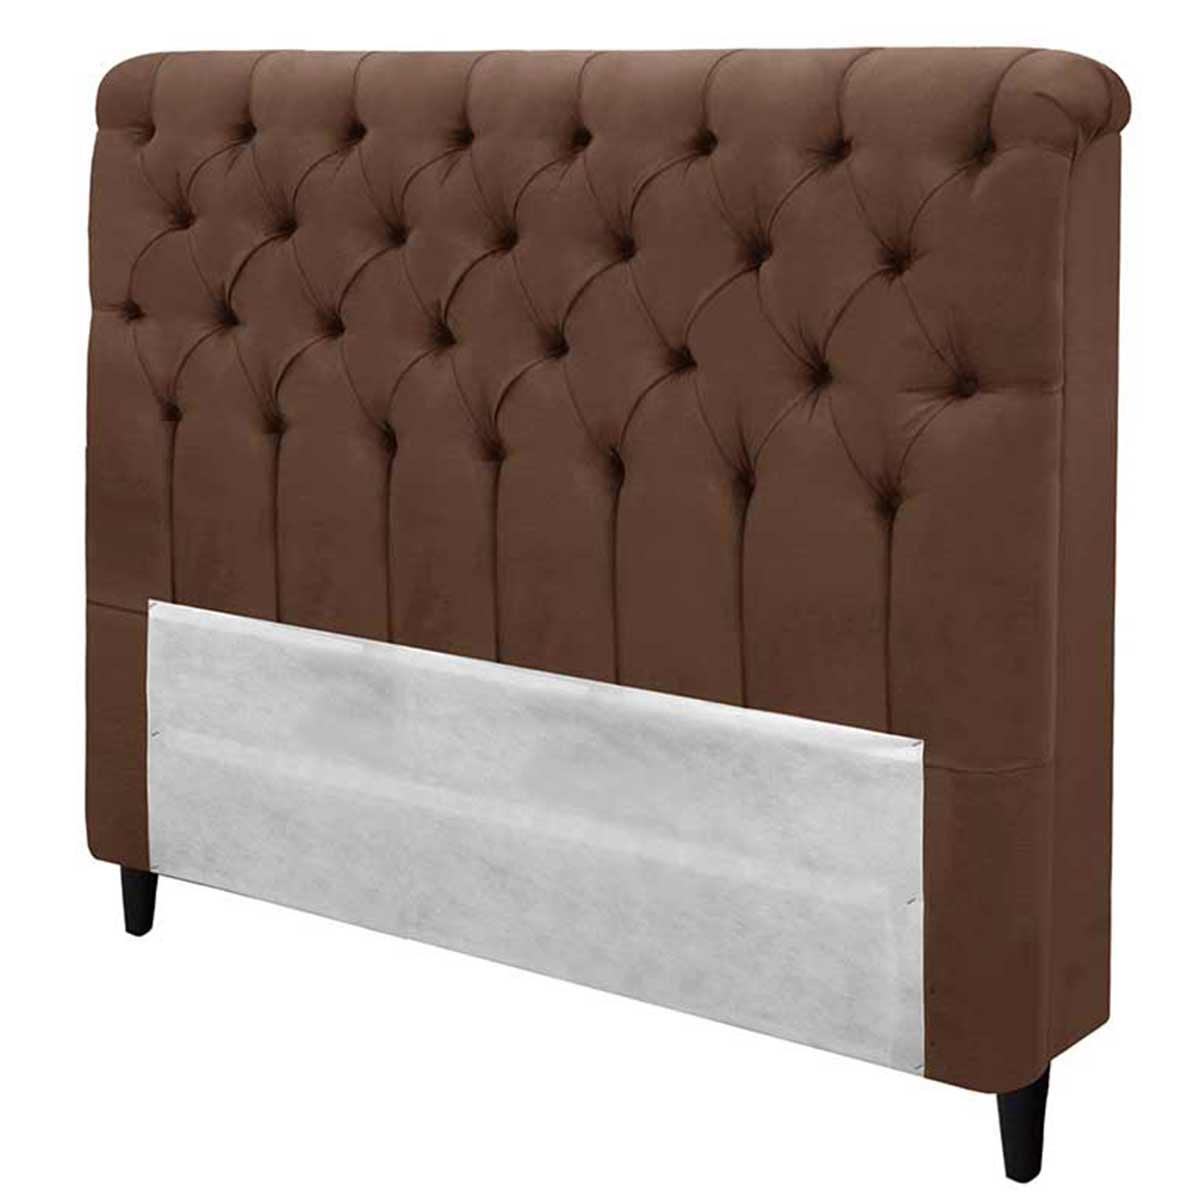 Cabeceira Imperatriz Casal 140 cm Suede Chocolate Simbal